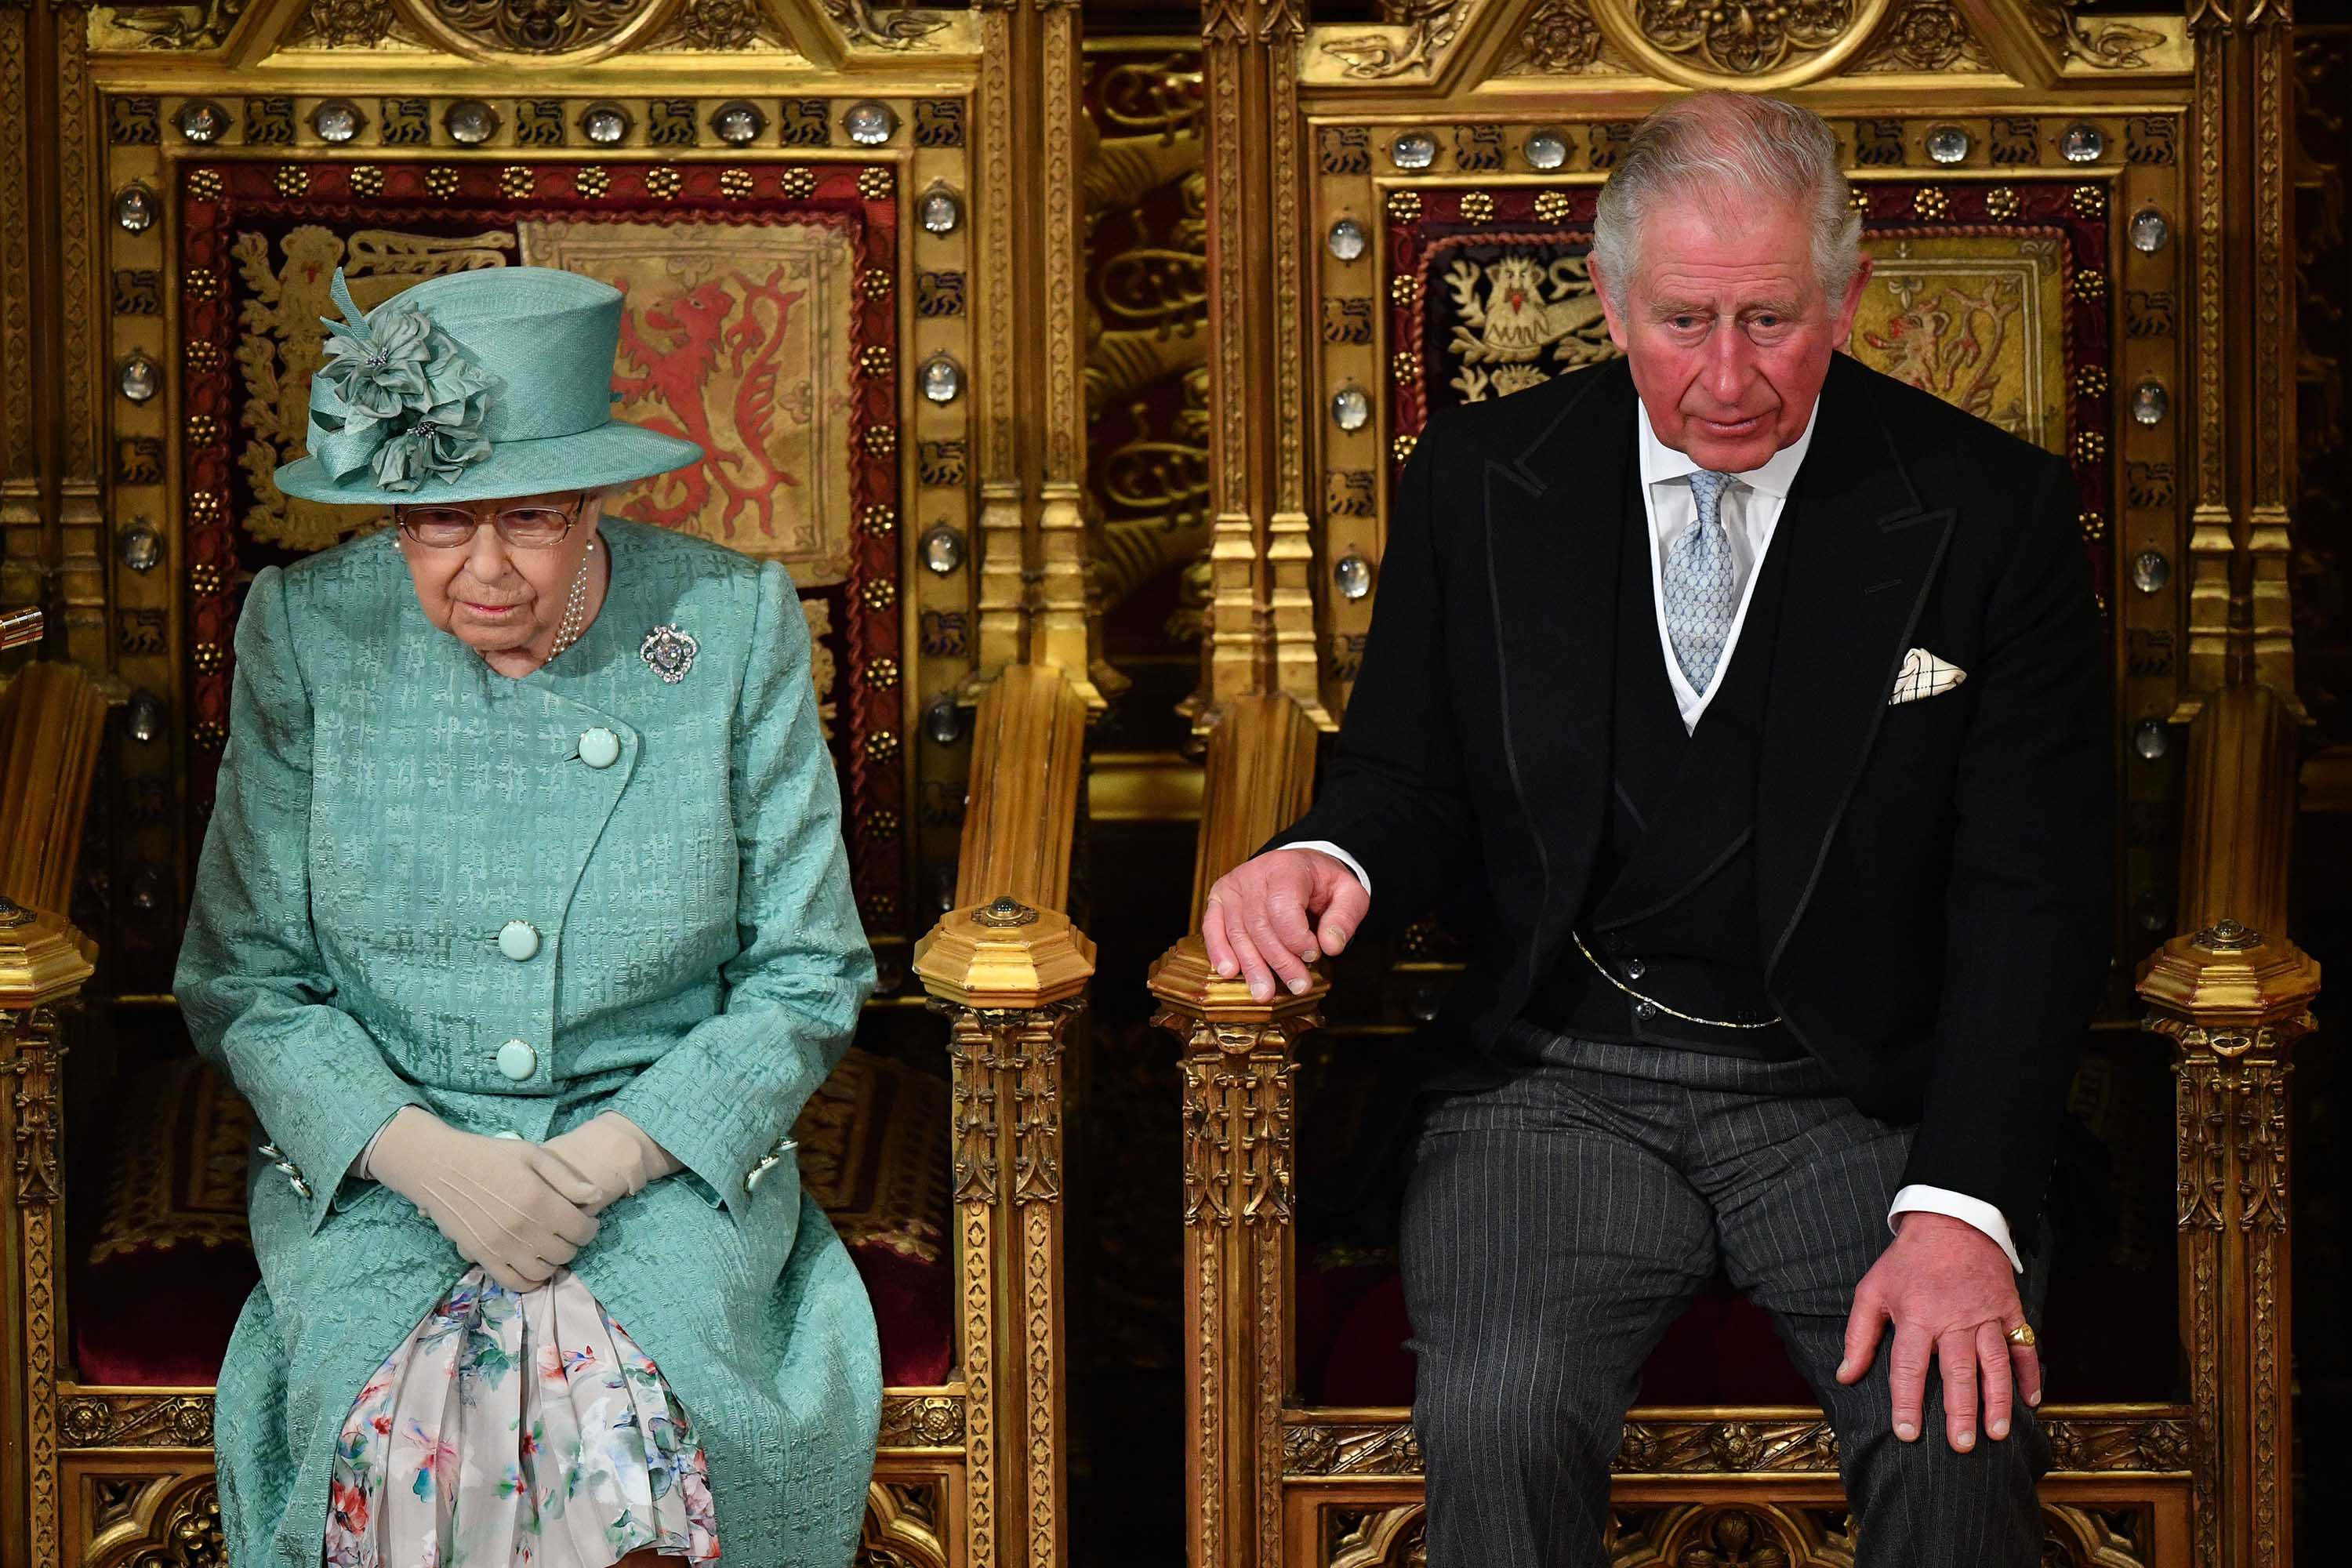 Britain's Queen Elizabeth II and Prince Charles are pictured during the State Opening of Parliament in December 2019.